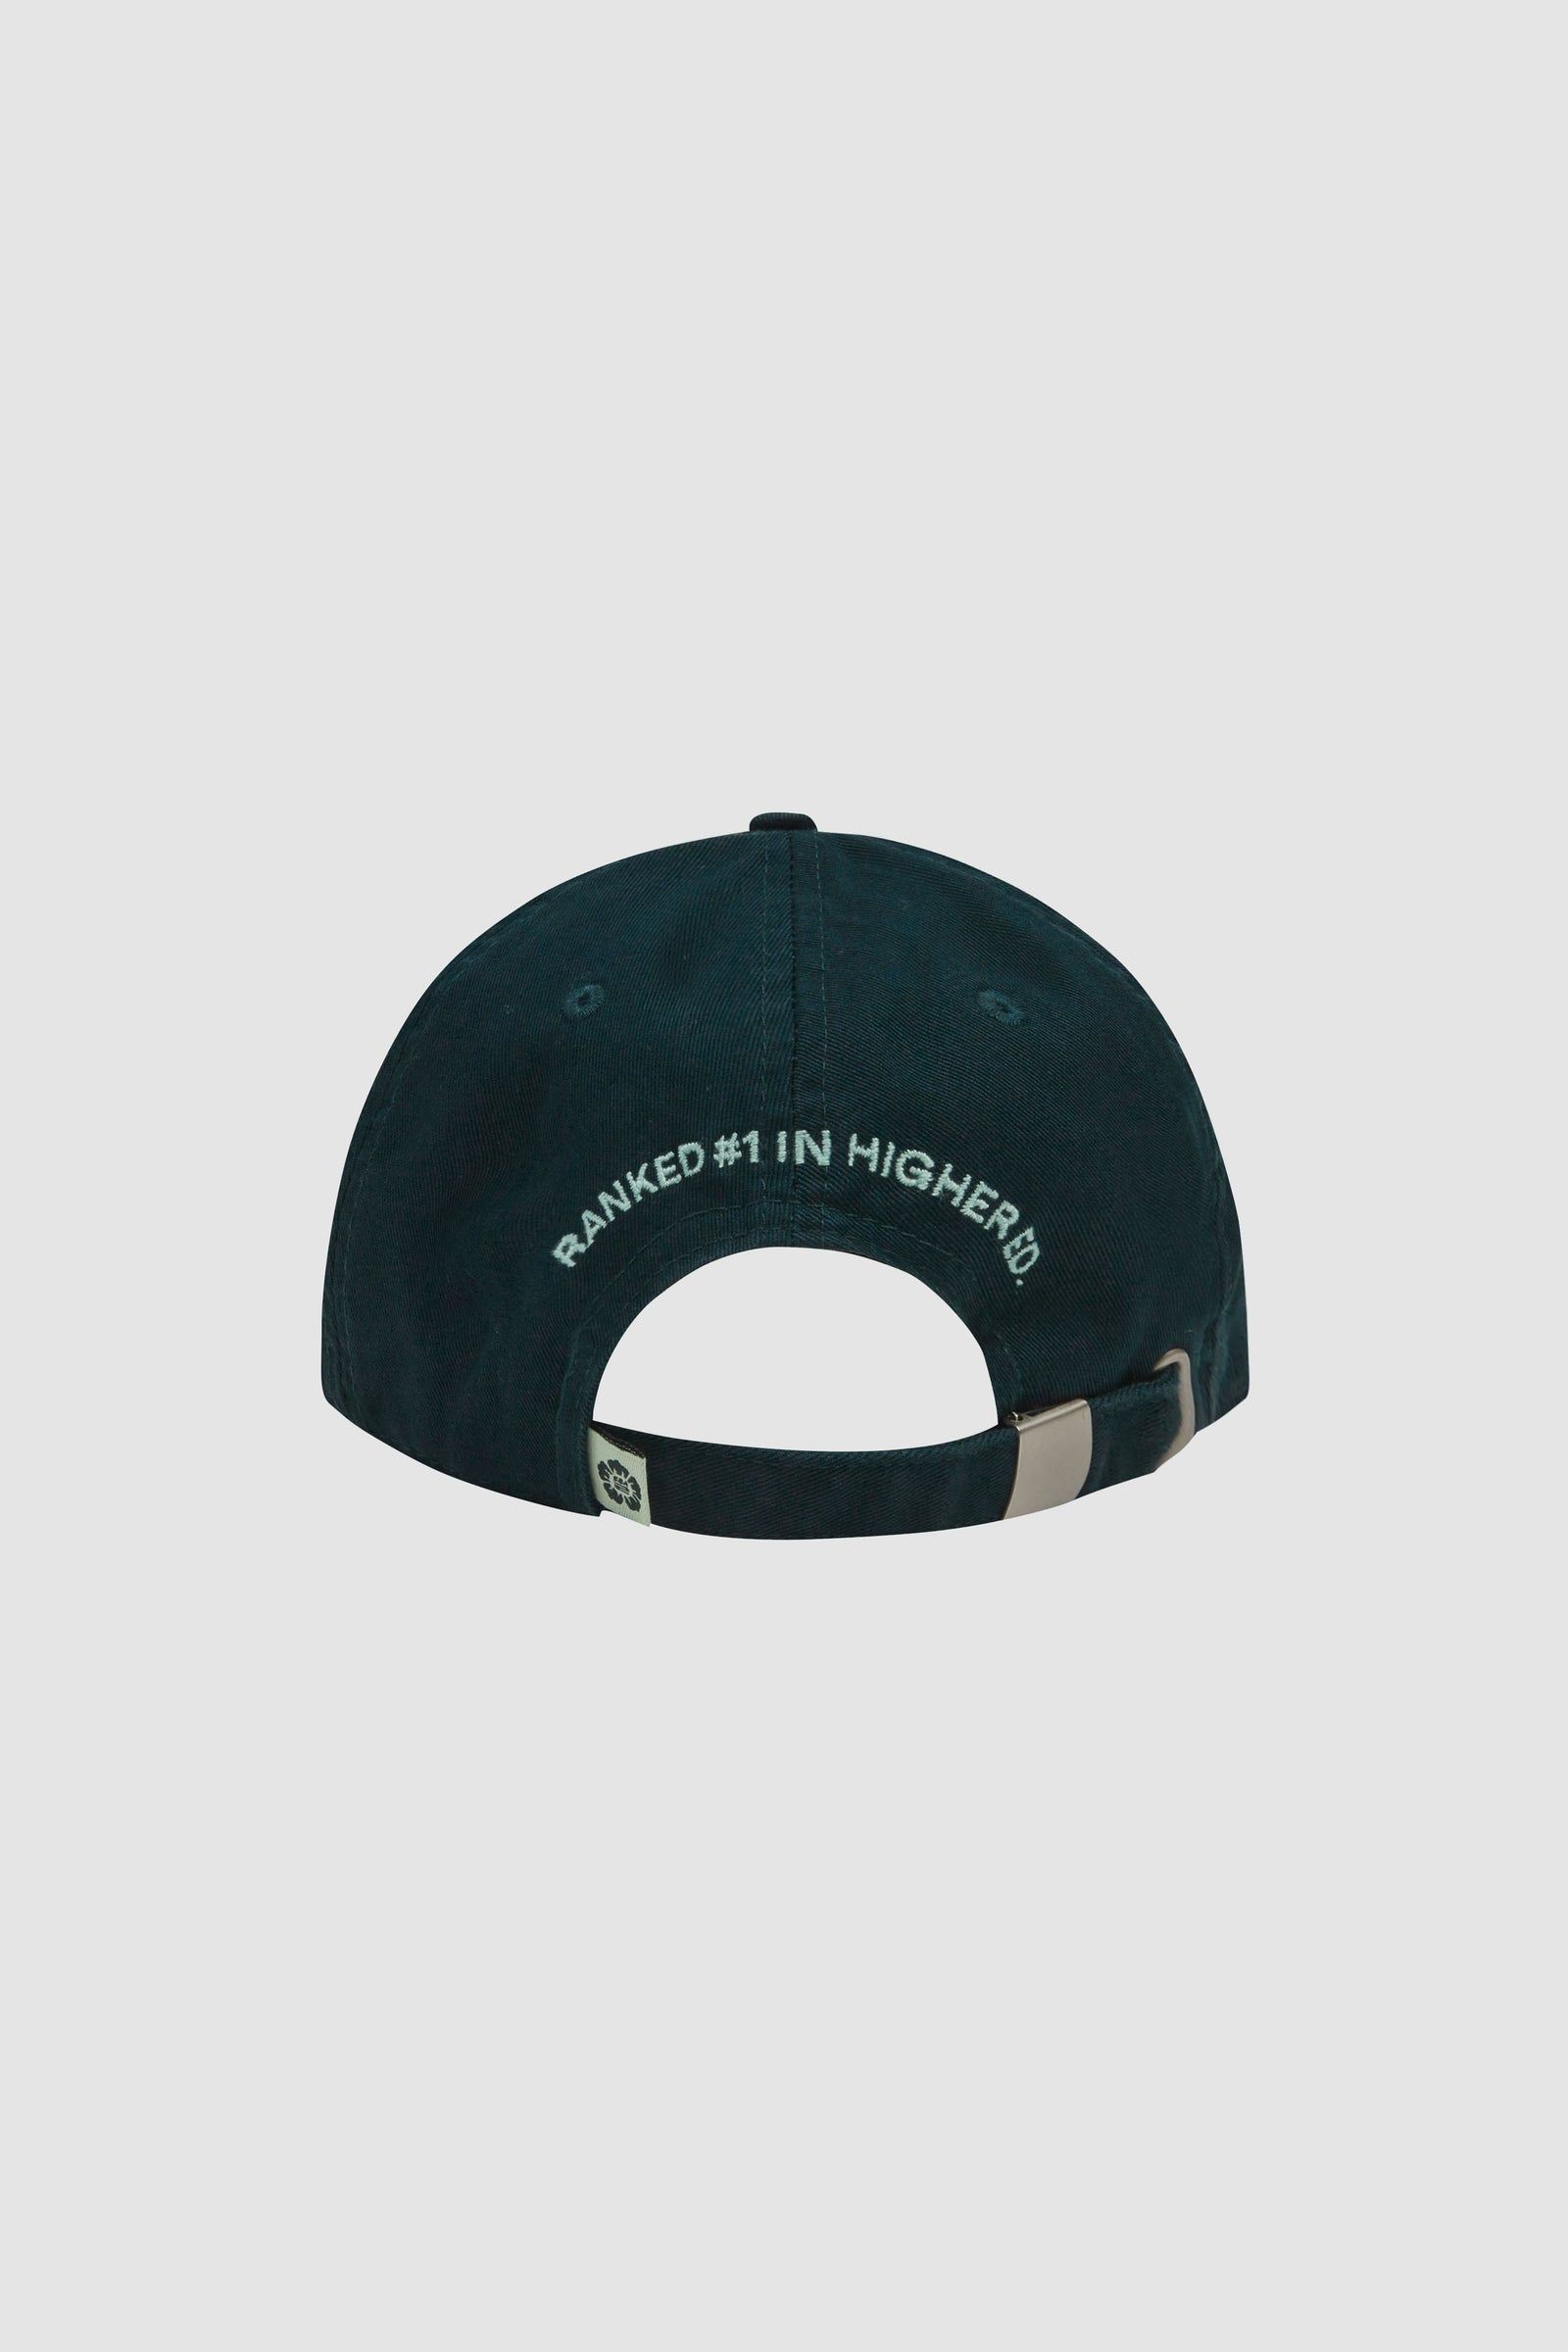 Photo of Logo Cap / Dark Green, number 4